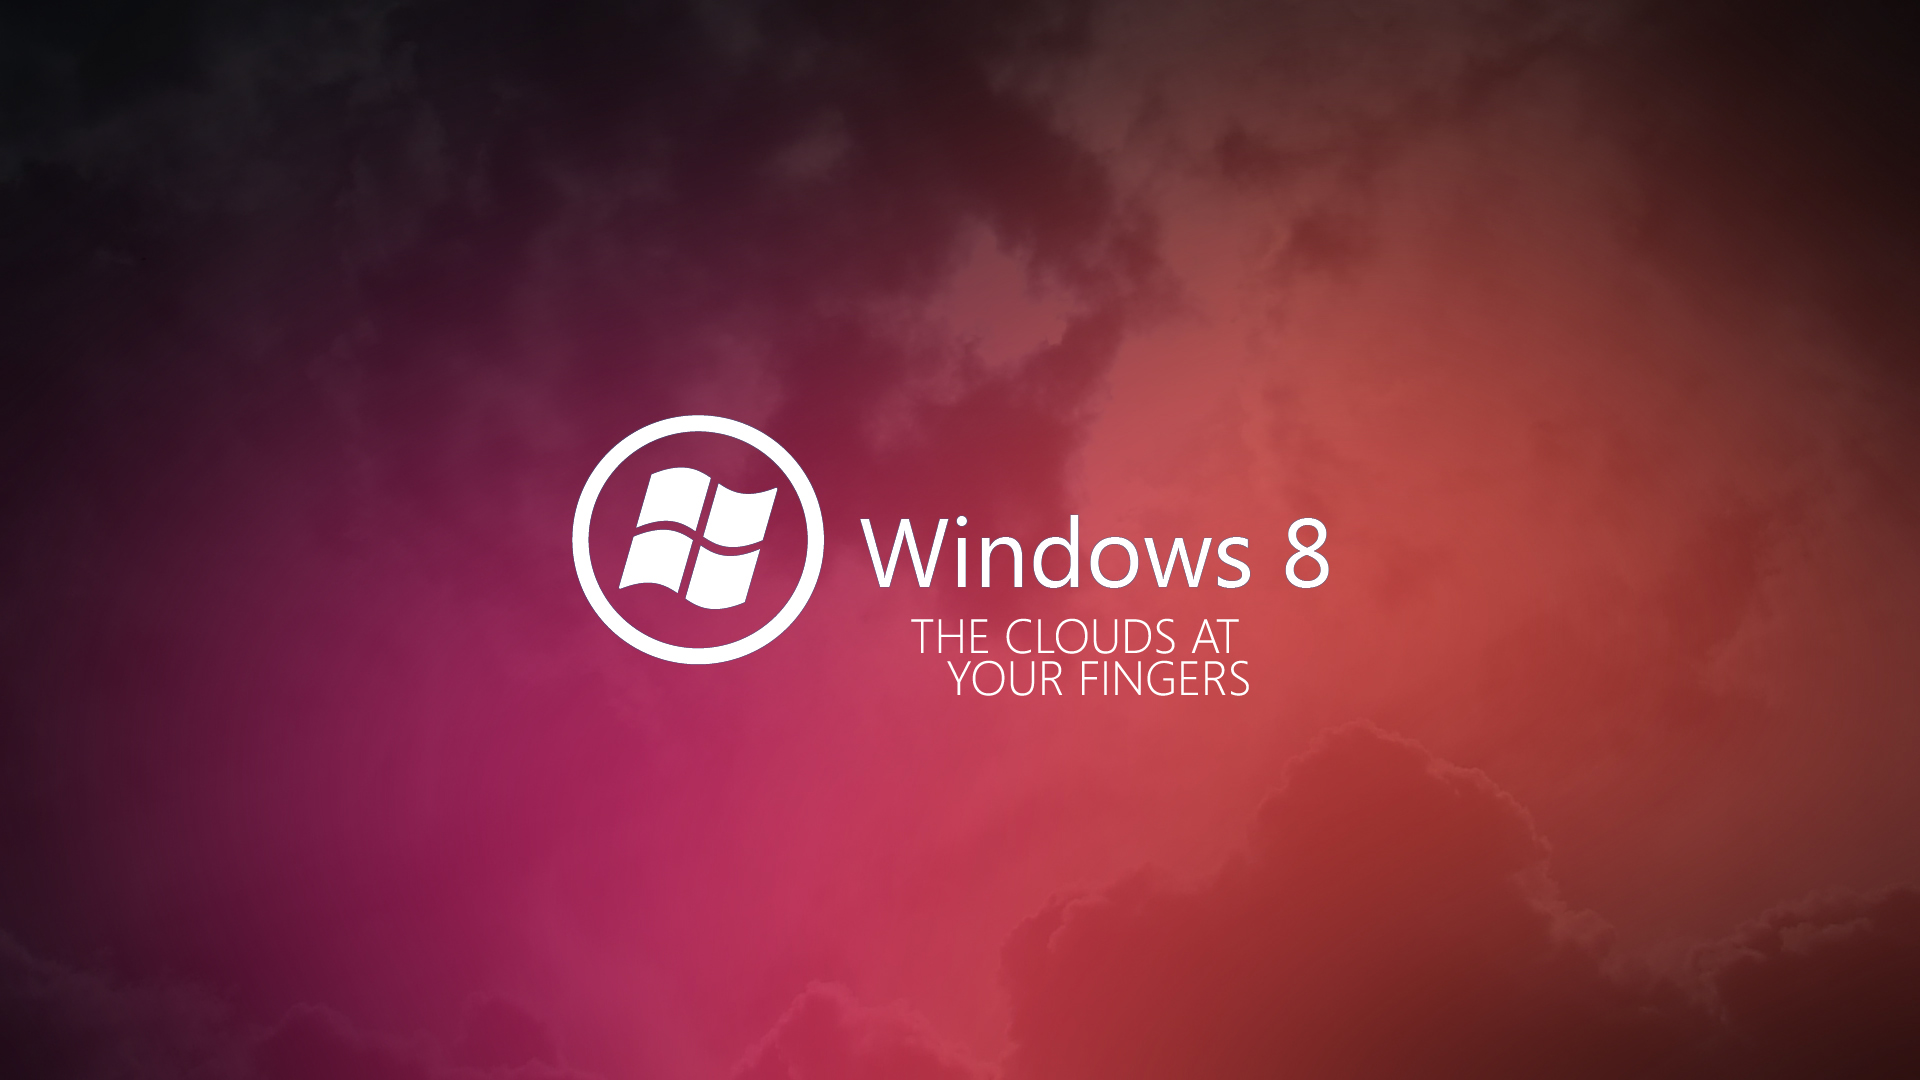 windows 8 images windows 8 red hd wallpaper and background photos